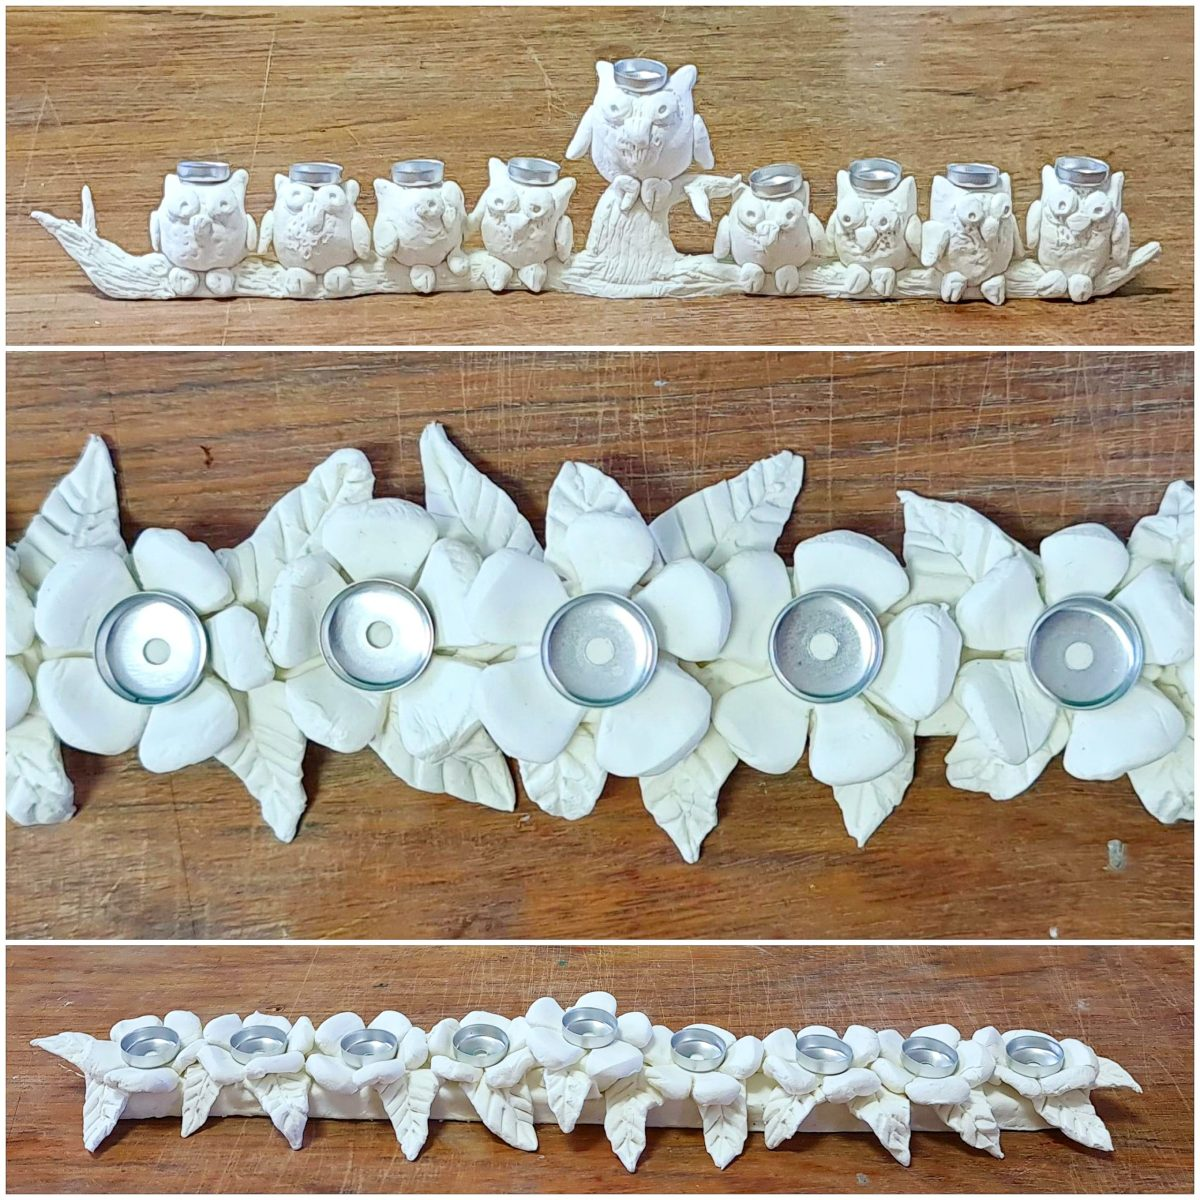 DIY clay menorahs